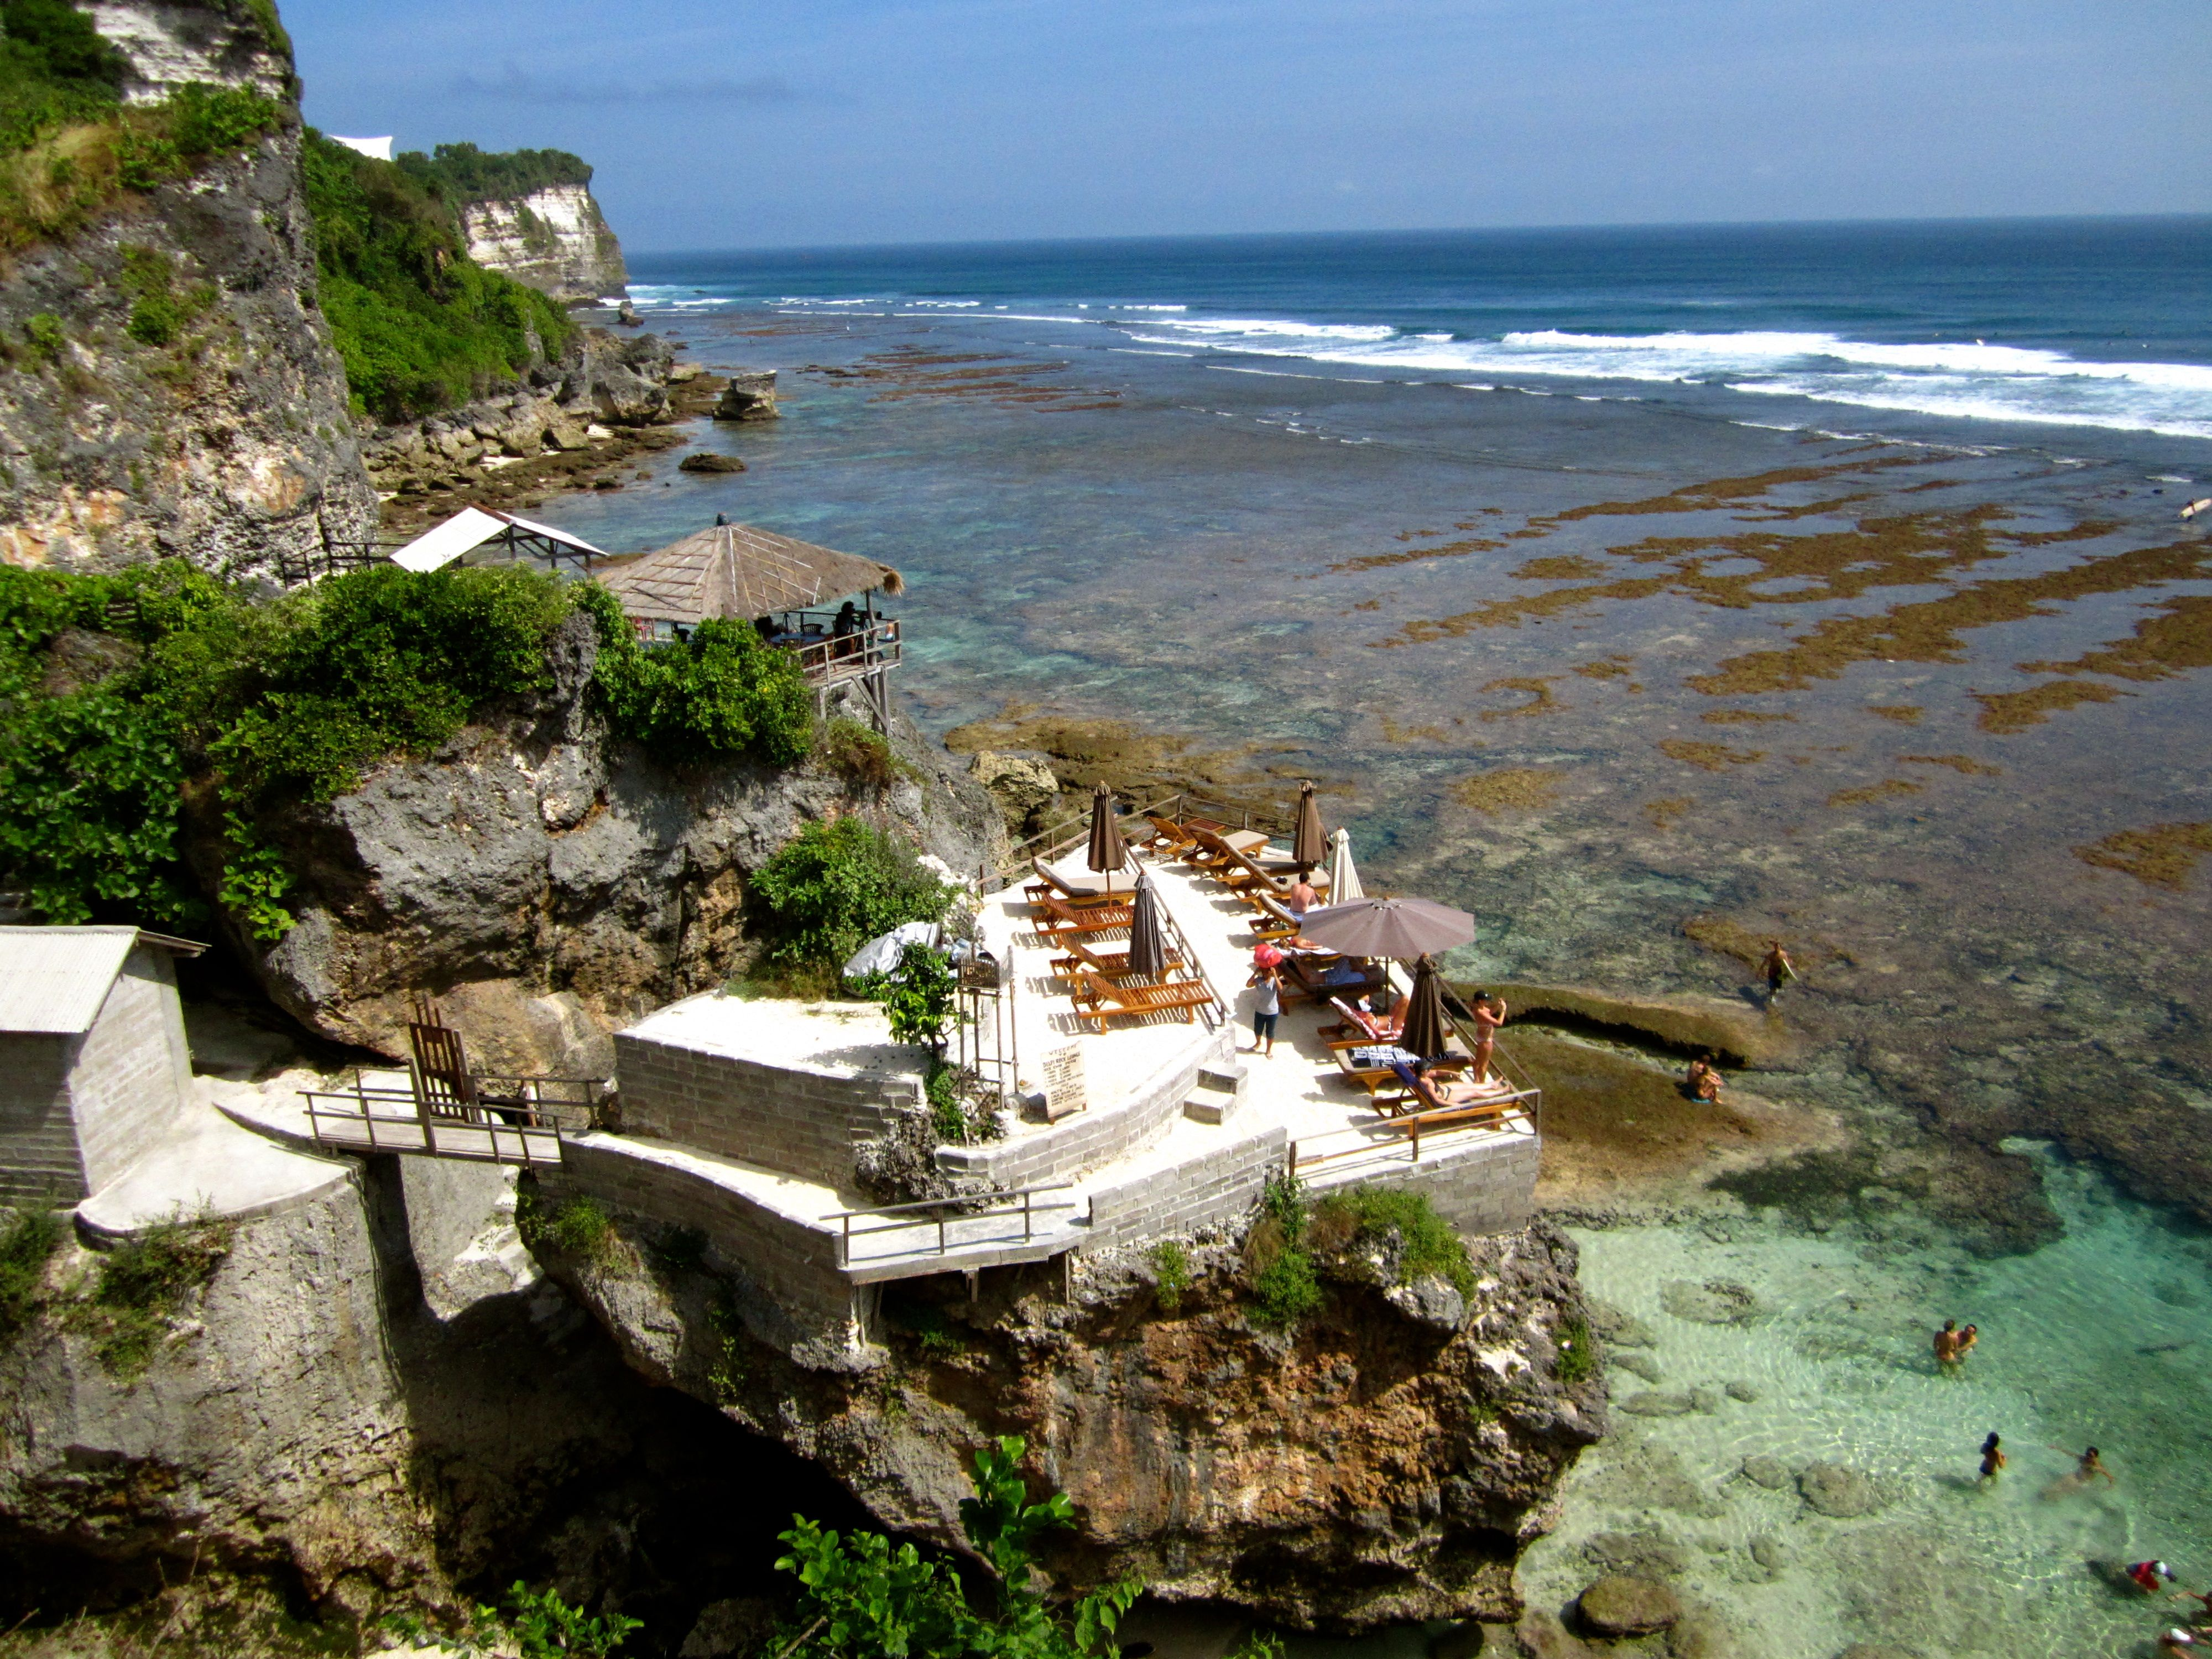 Bali, Indonesia Great Surf